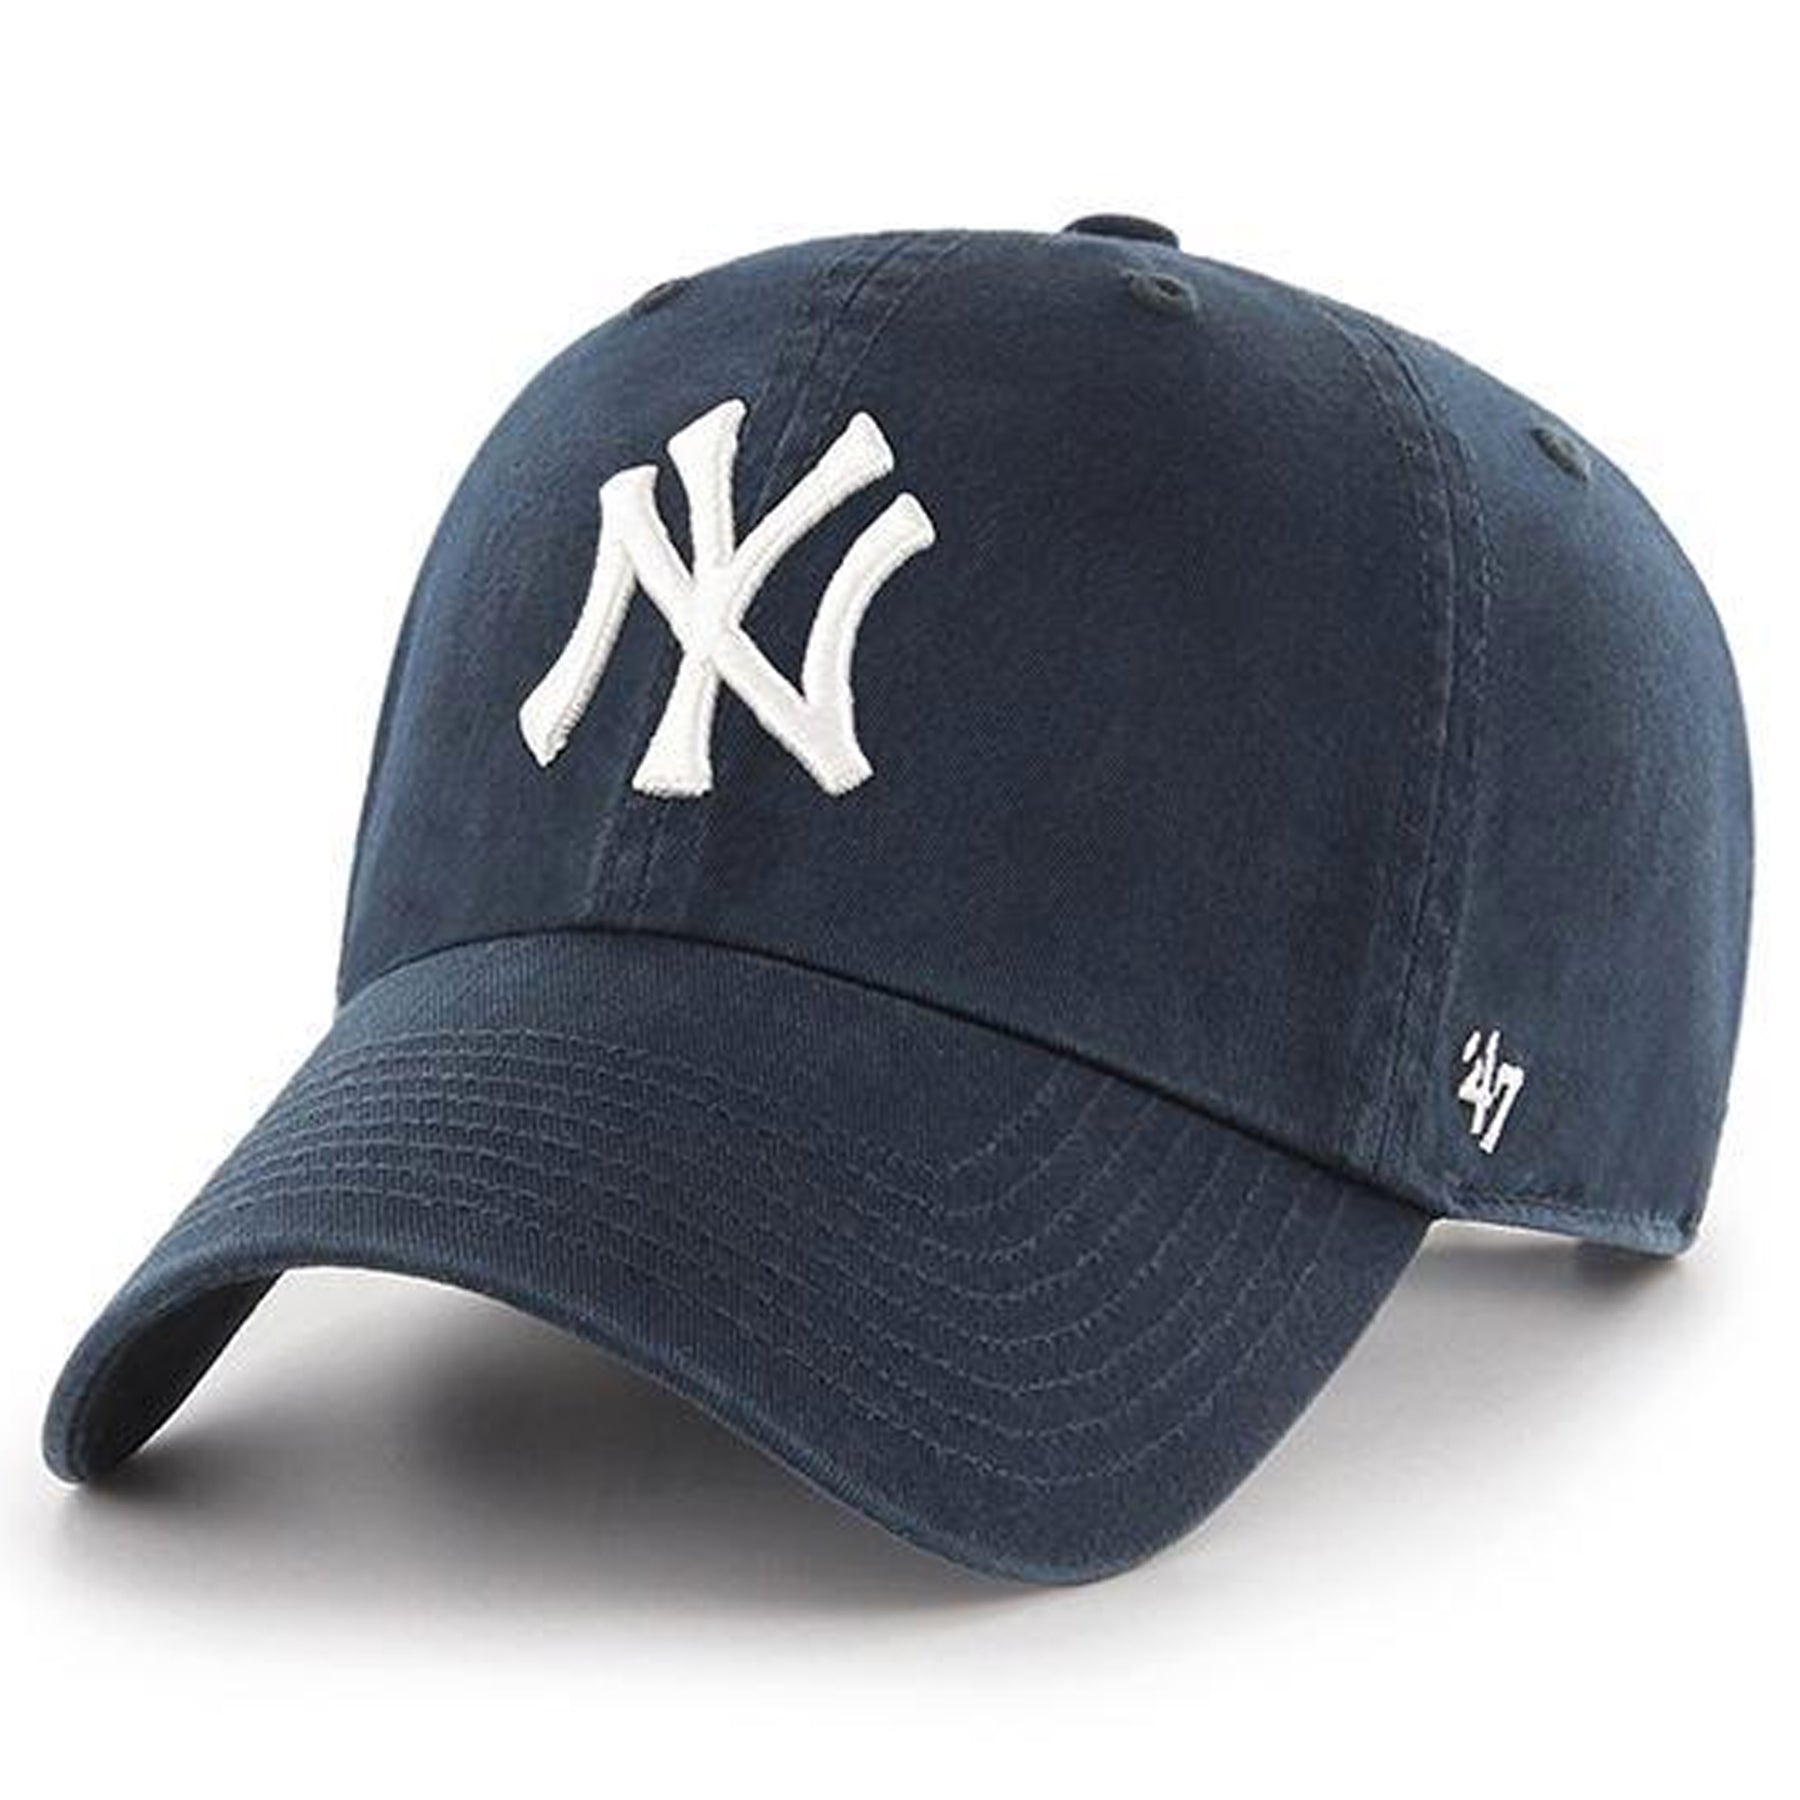 on the front of the classic new york yankees navy blue baseball cap is the  yankees 2b2a9ba8f7f